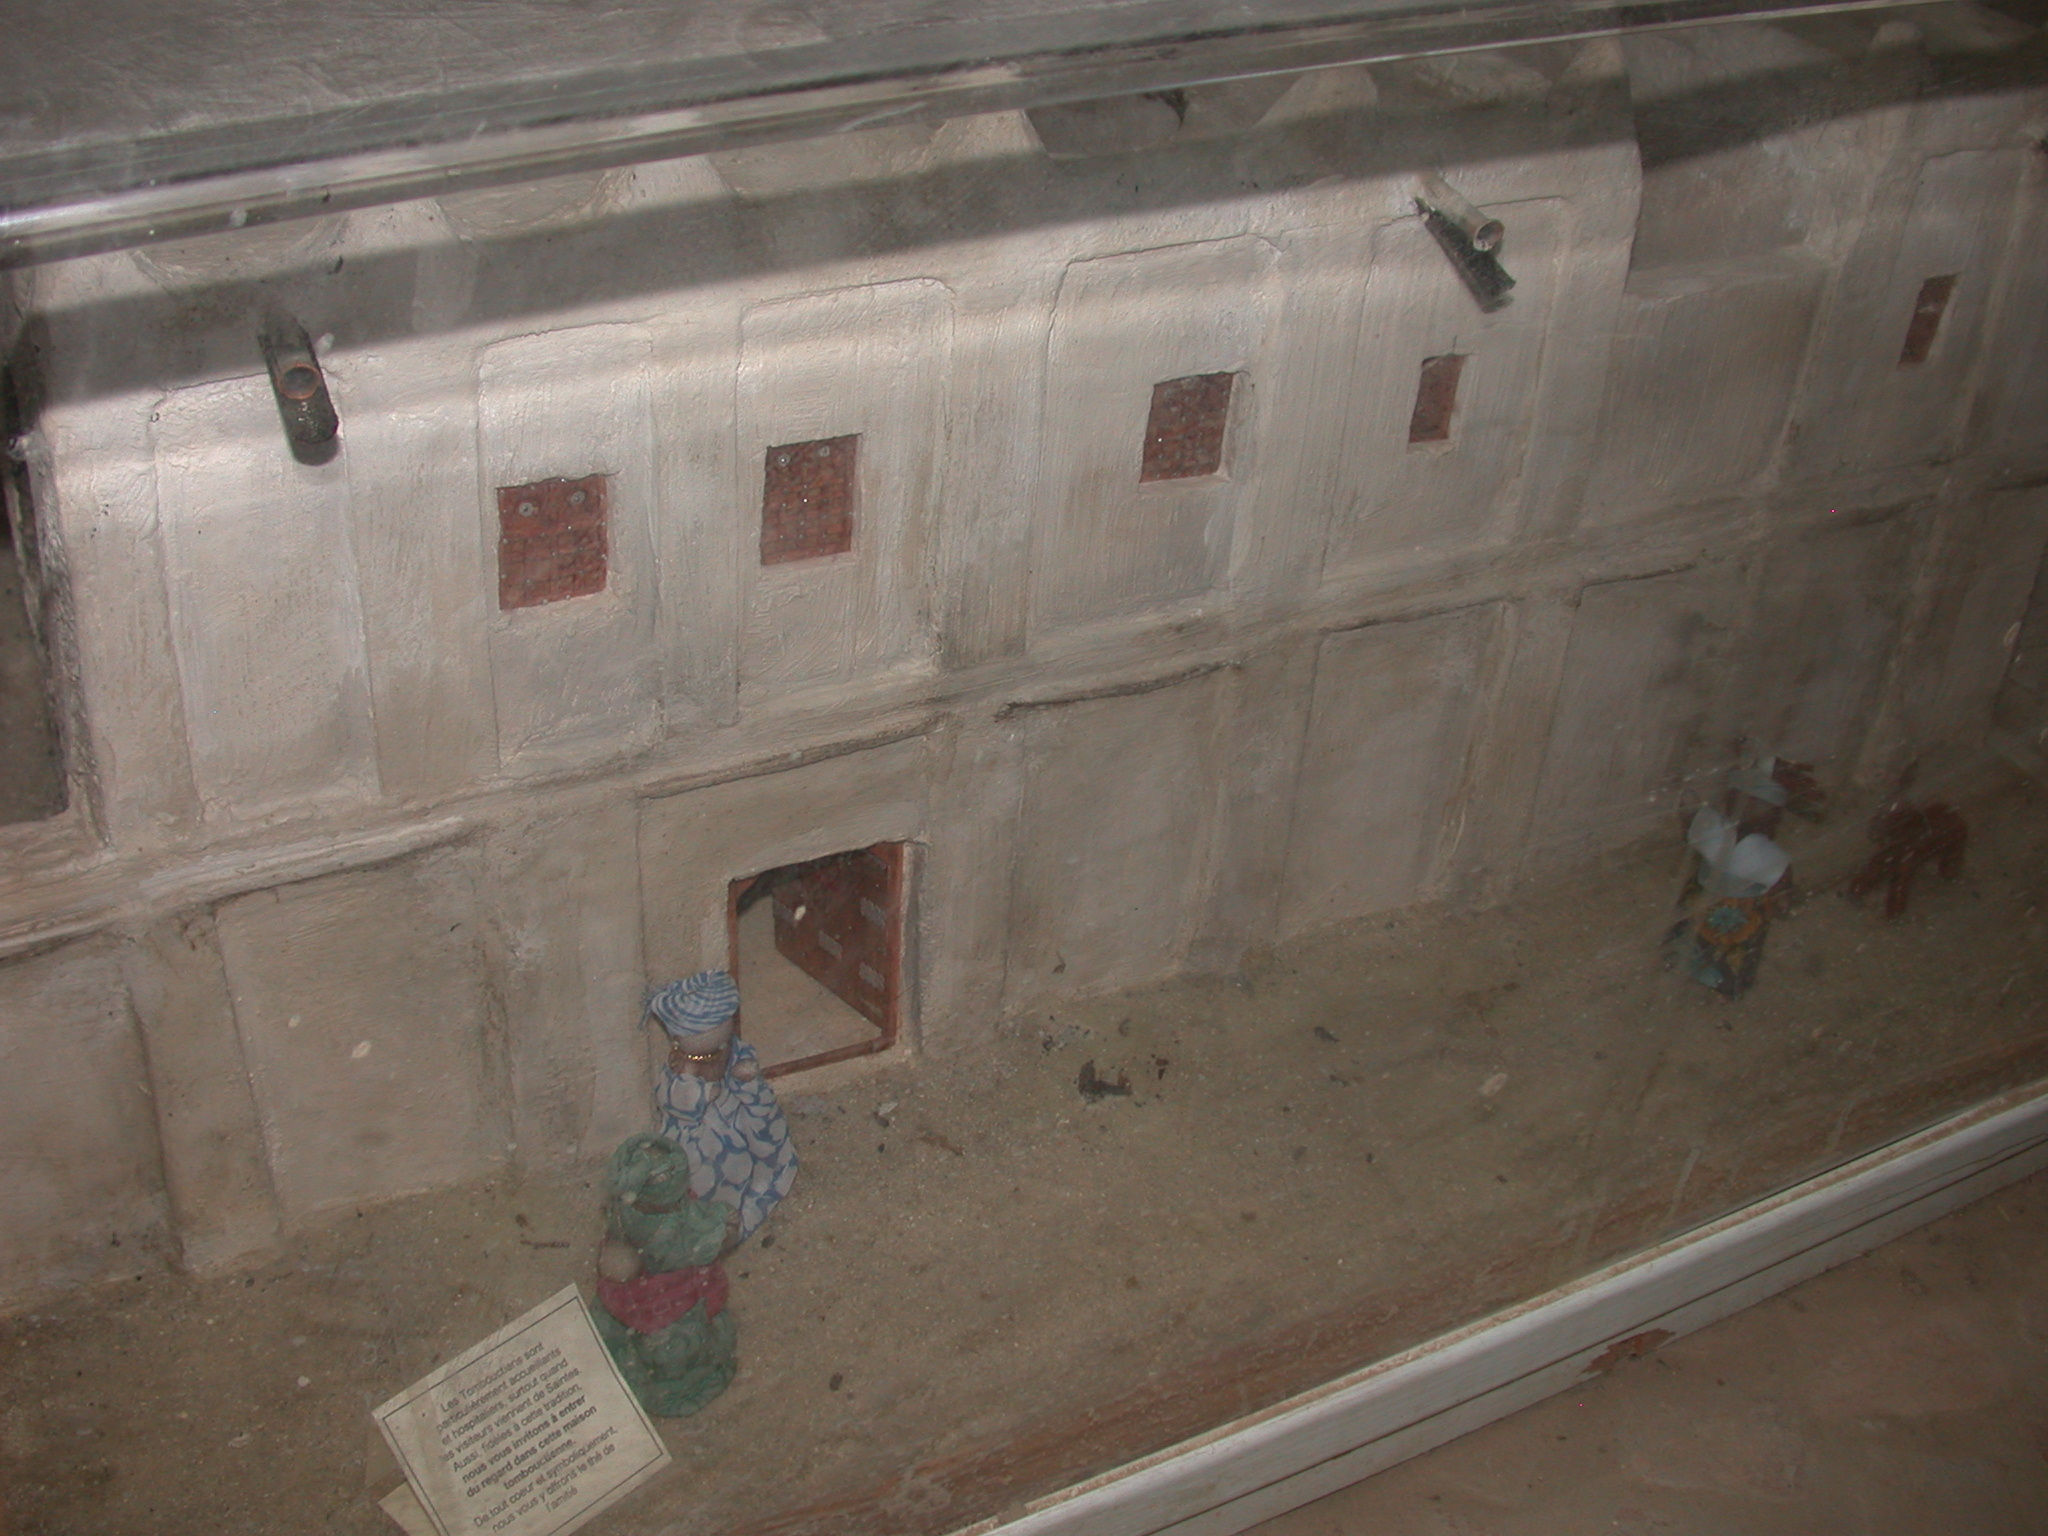 Model of a Timbuktu House, Part II, Timbuktu Ethnological Museum, Timbuktu, Mali